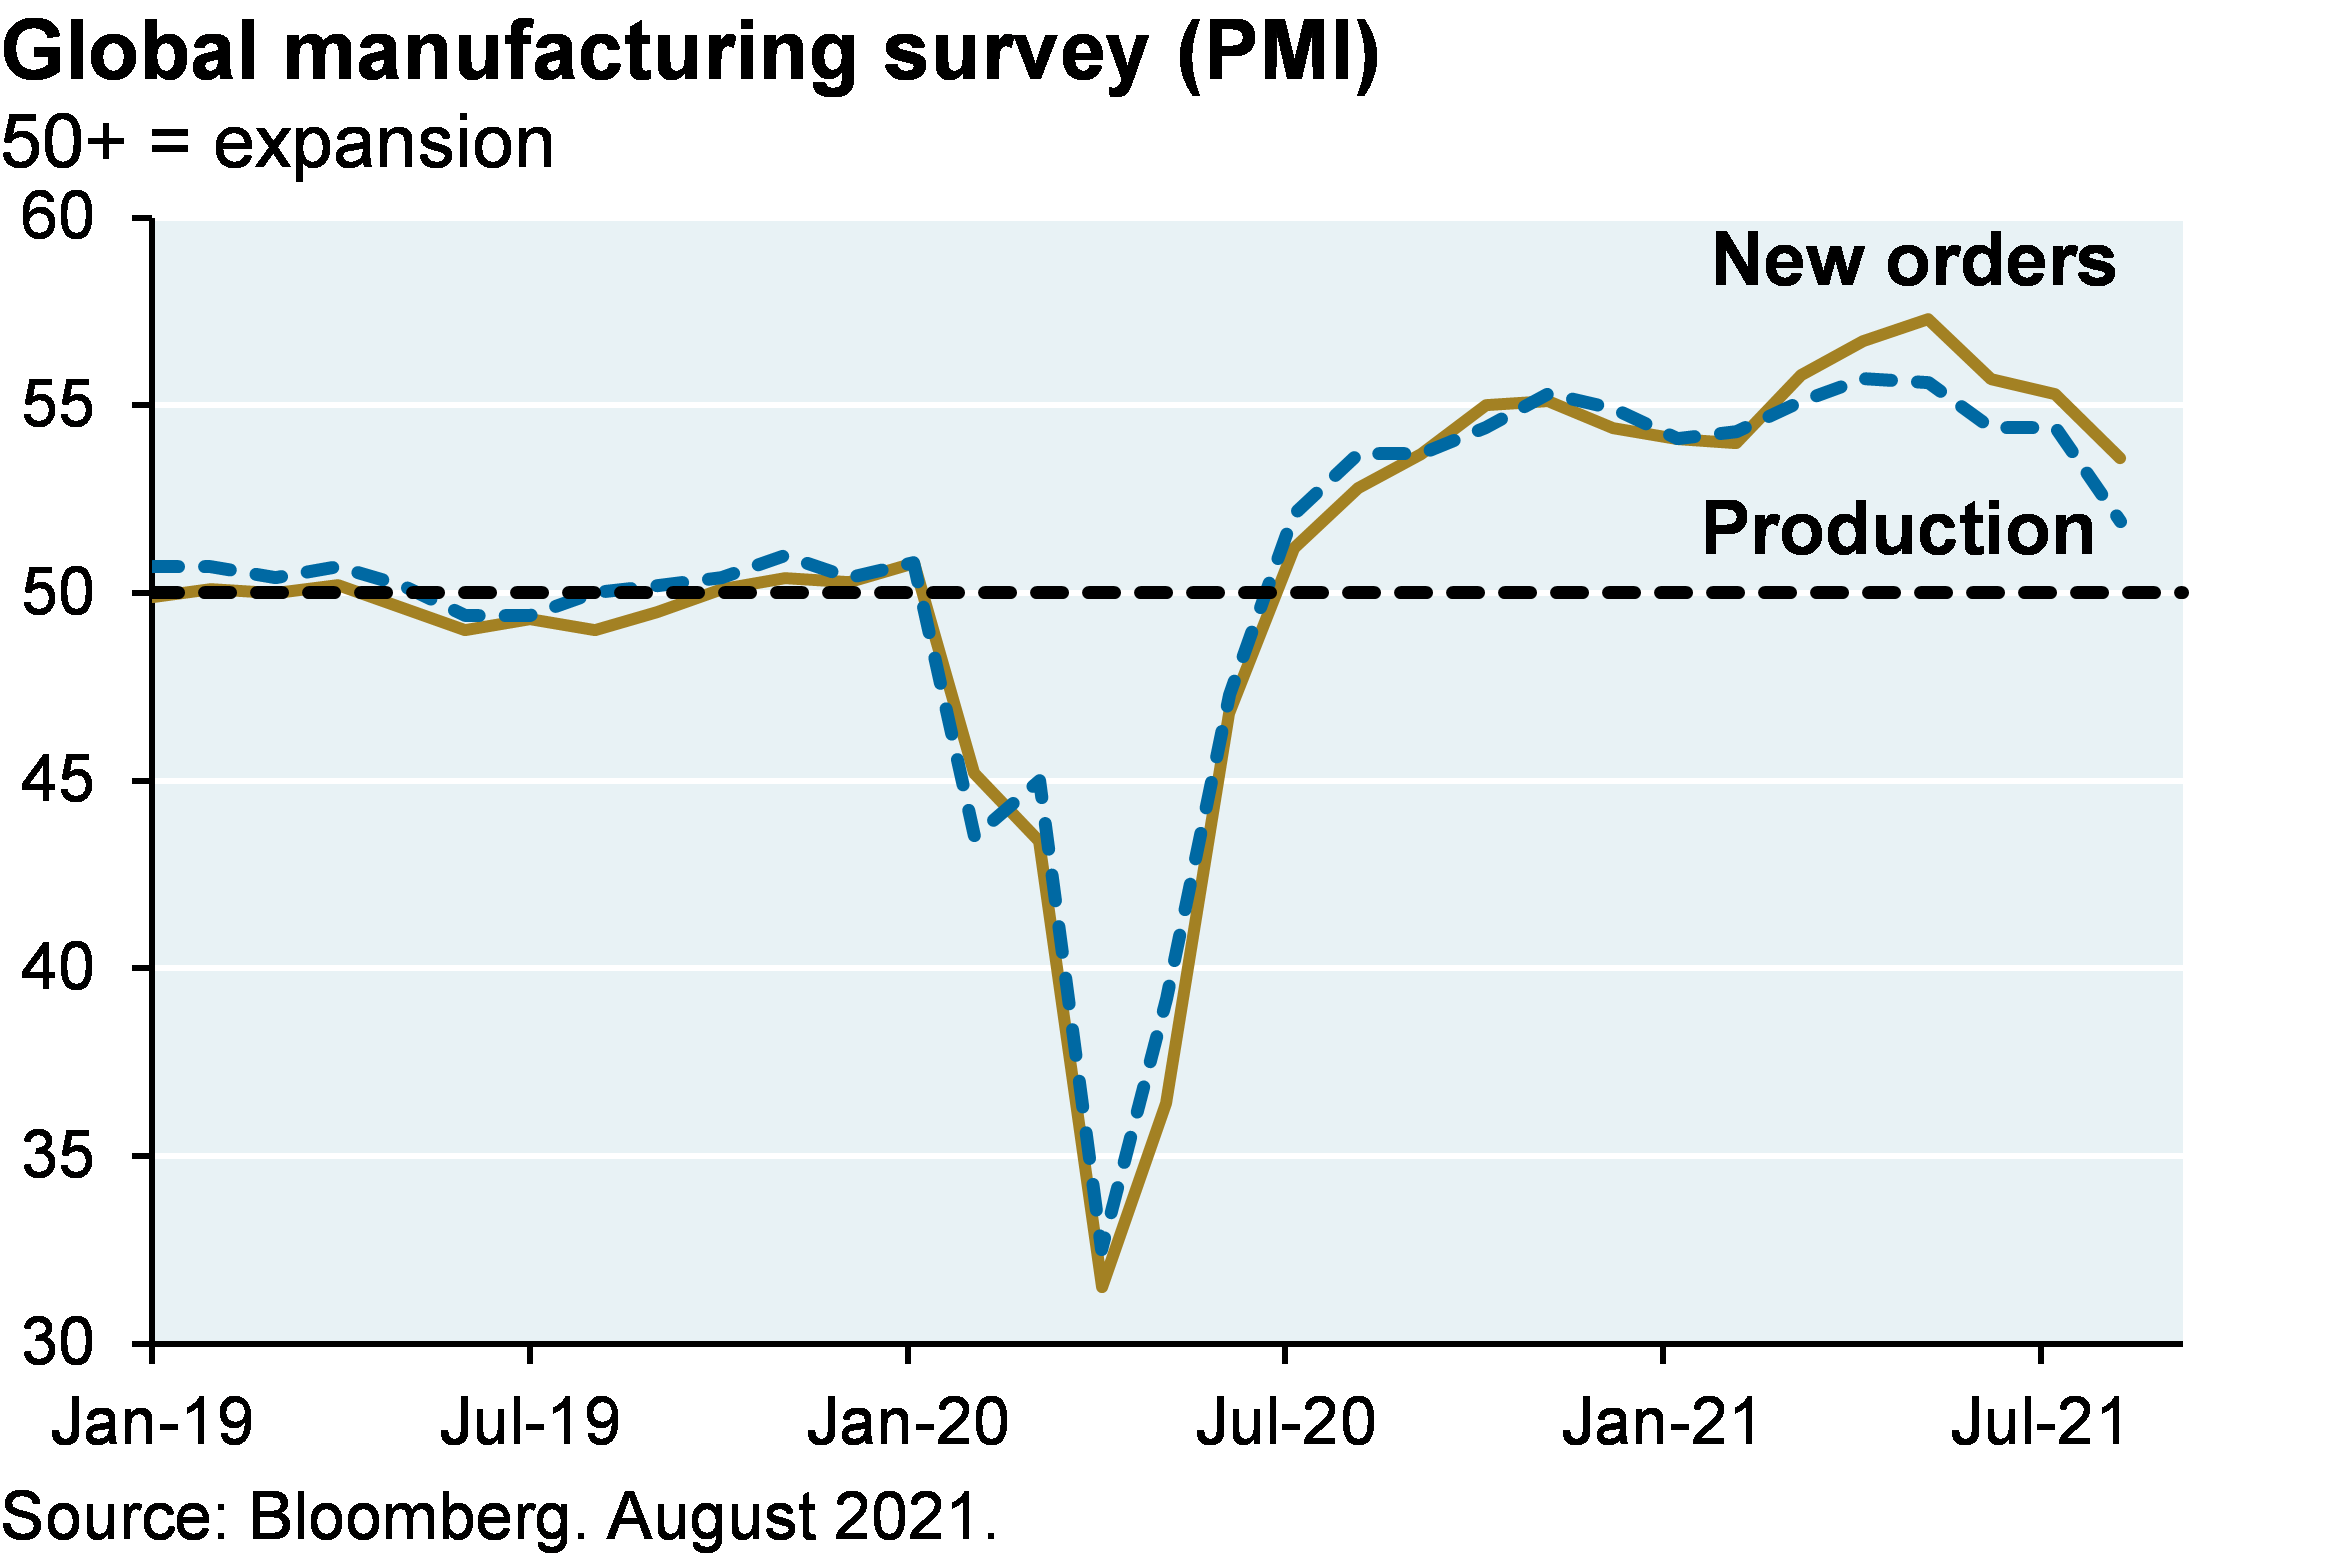 Line chart shows global manufacturing PMI, where a value of 50+ represents an expansion. Chart shows that manufacturing new orders and manufacturing production dropped to a value of nearly 30, steadily increased to 55, and have recently slightly declined, with new orders slightly below 55 and production at around 53.